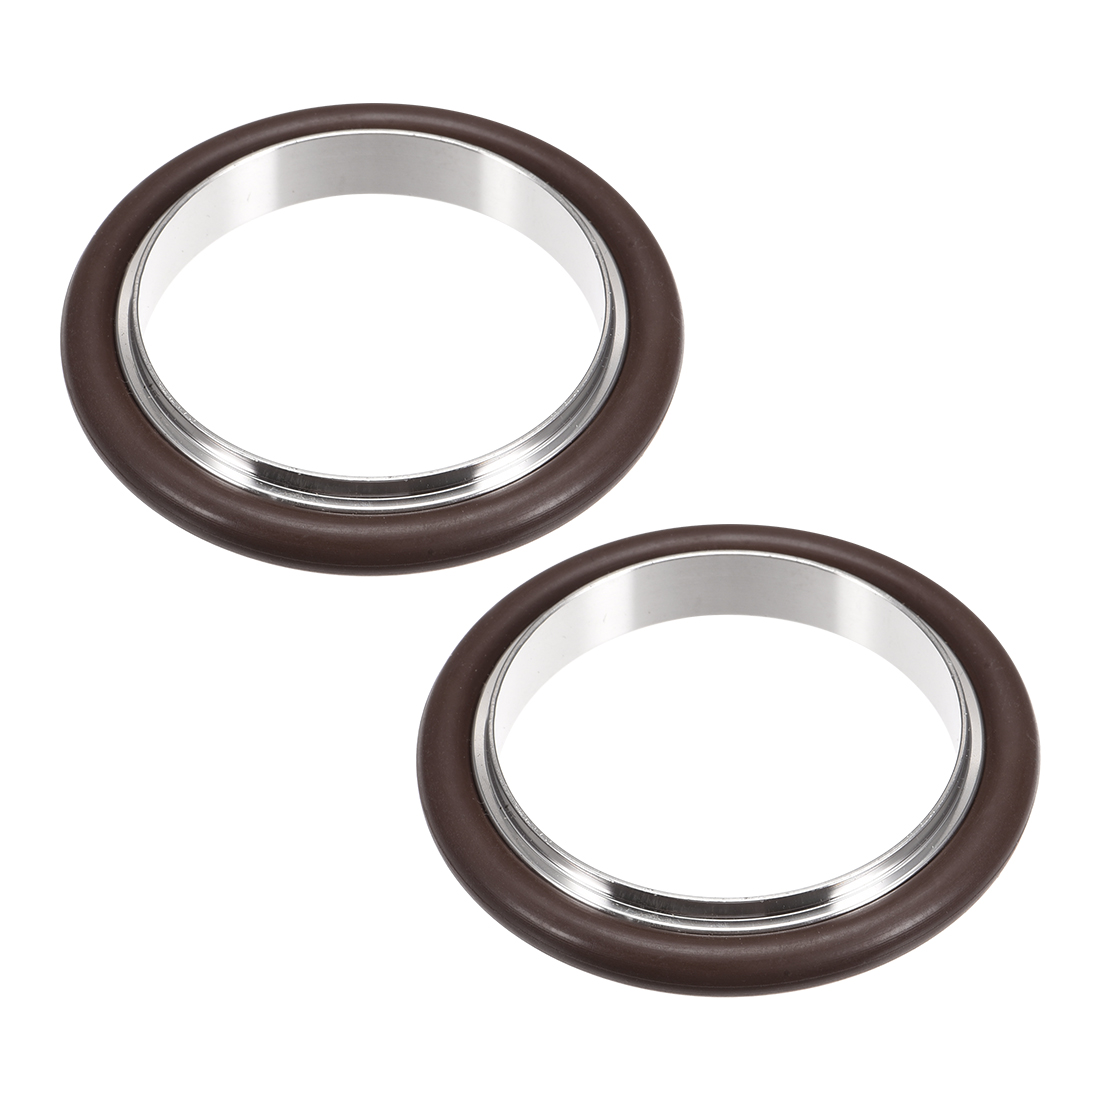 uxcell 2 Pcs Centering Ring KF-16 Vacuum Fittings ISO-KF Flange 53mm x 39.7mm Fluororubber O-Ring